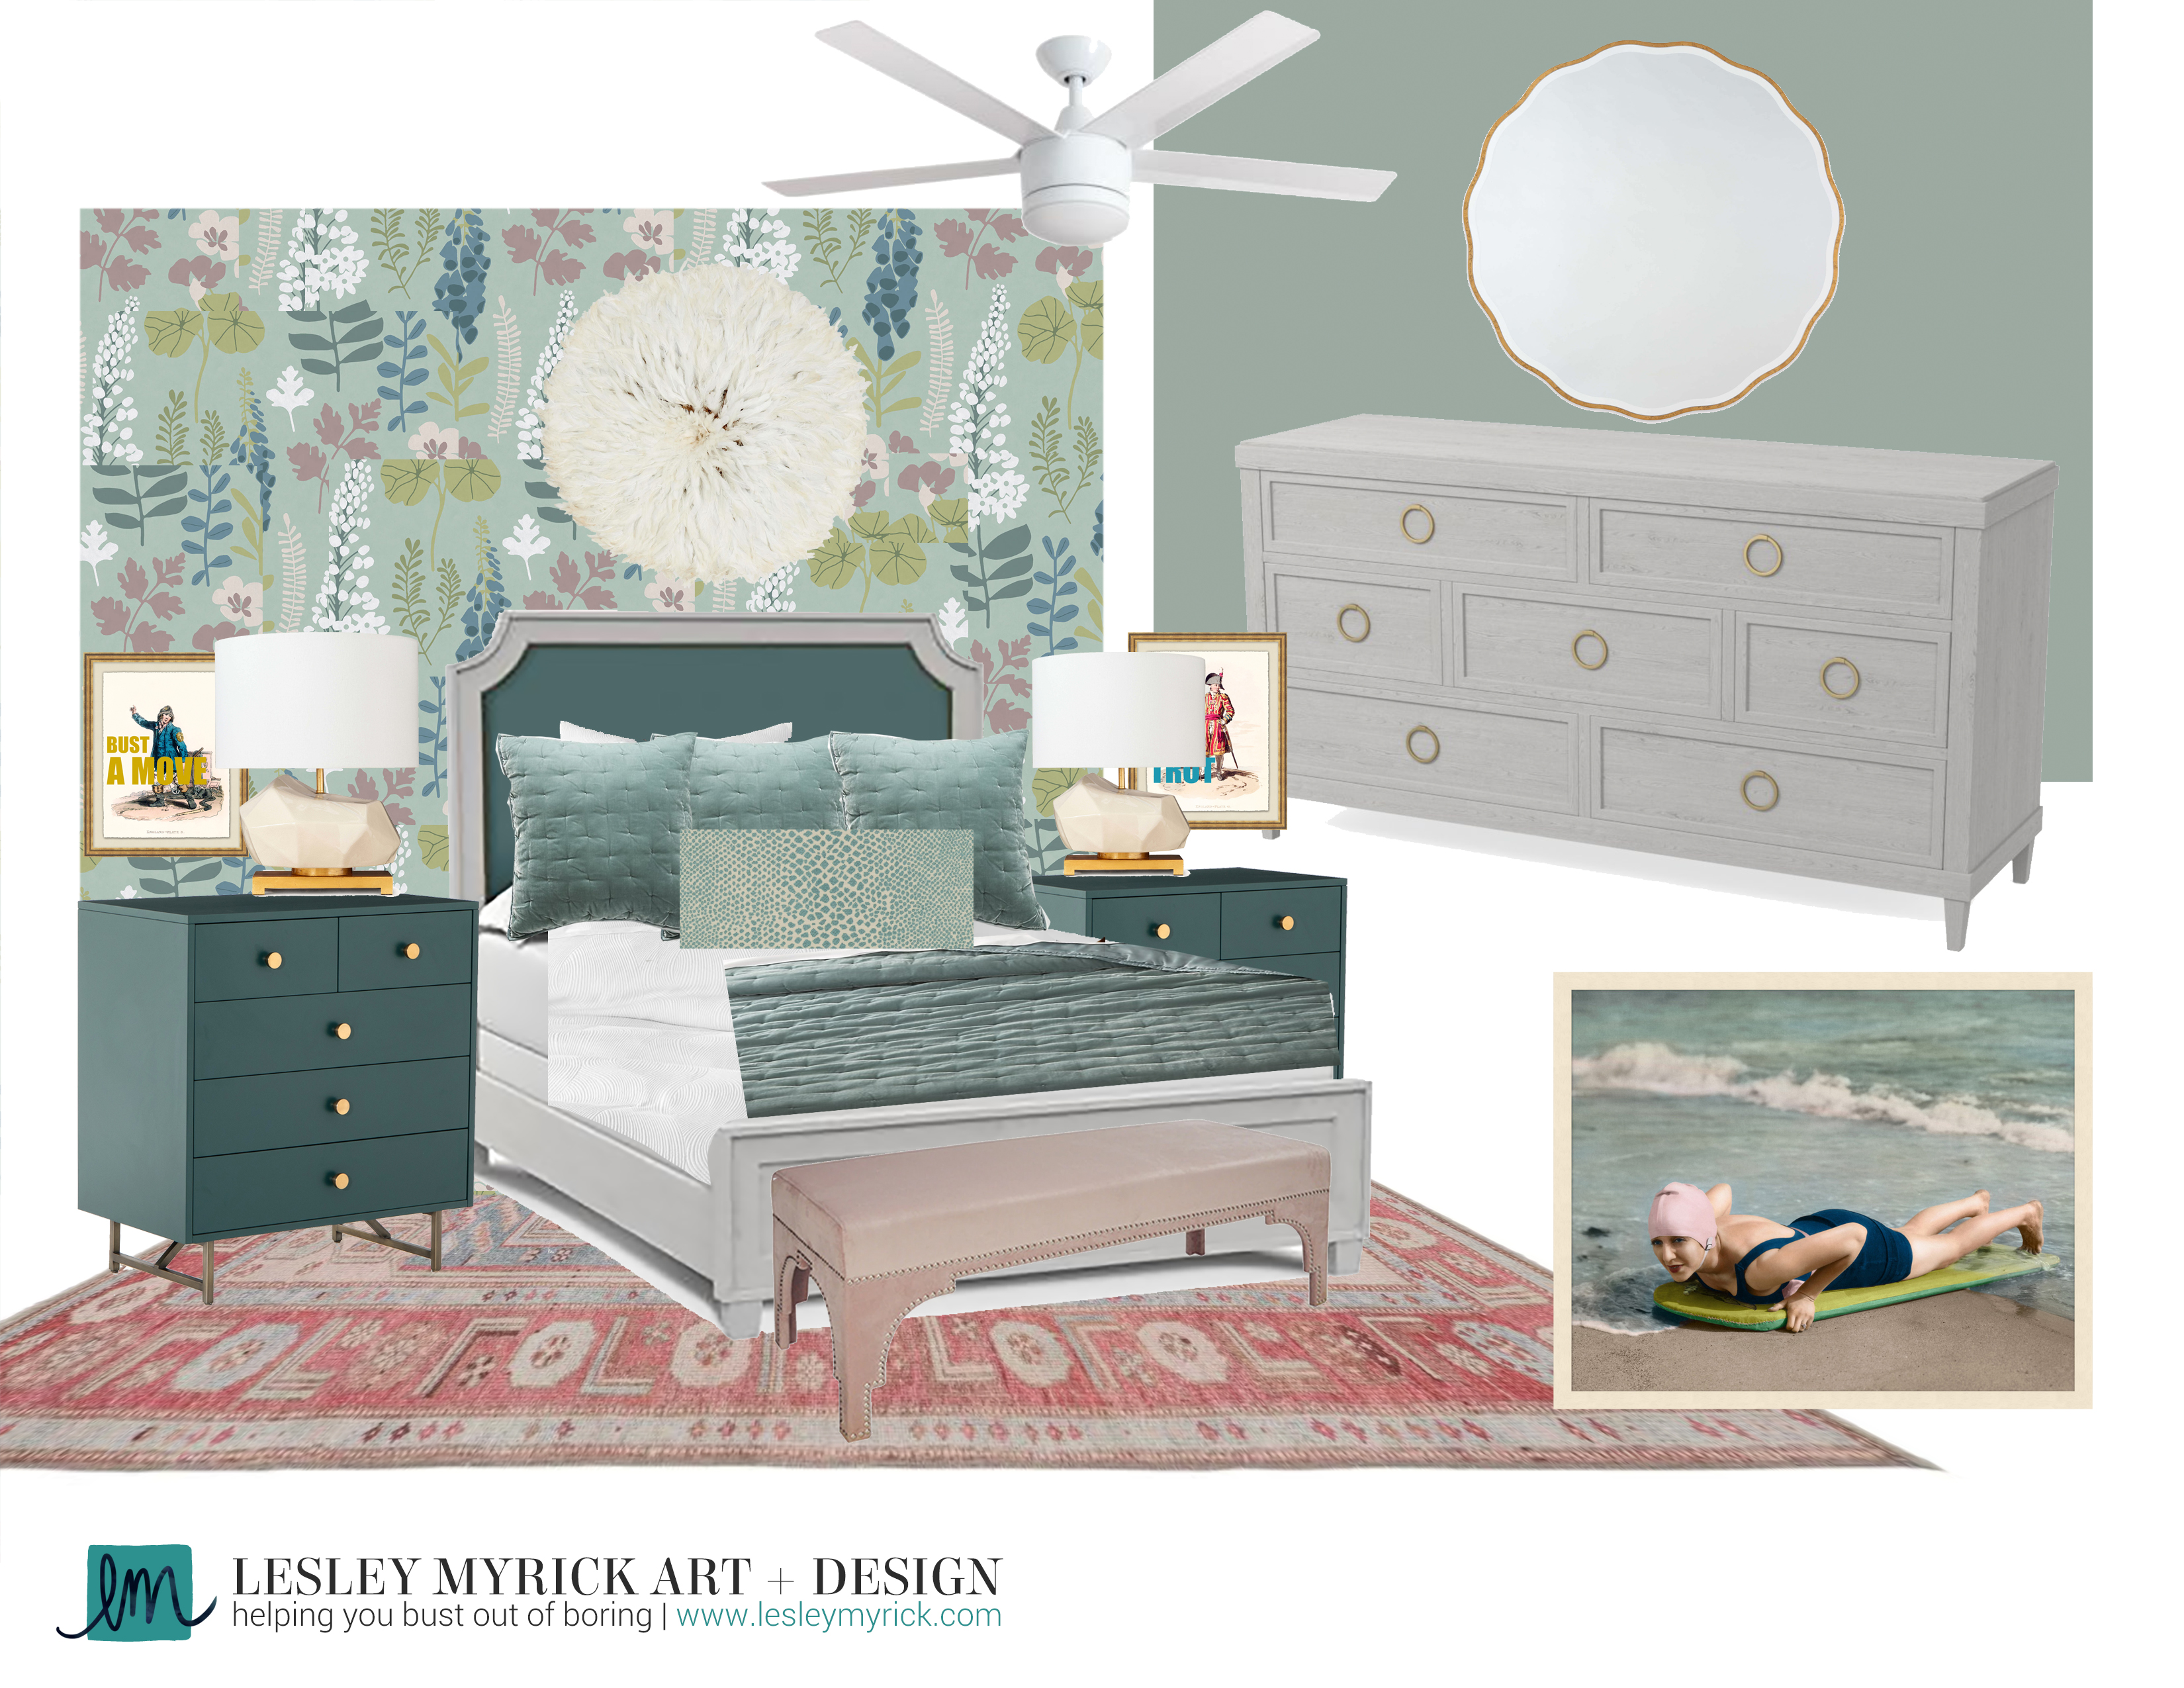 A moodboard of a green and pink bedroom from Lesley Myrick Art + Design